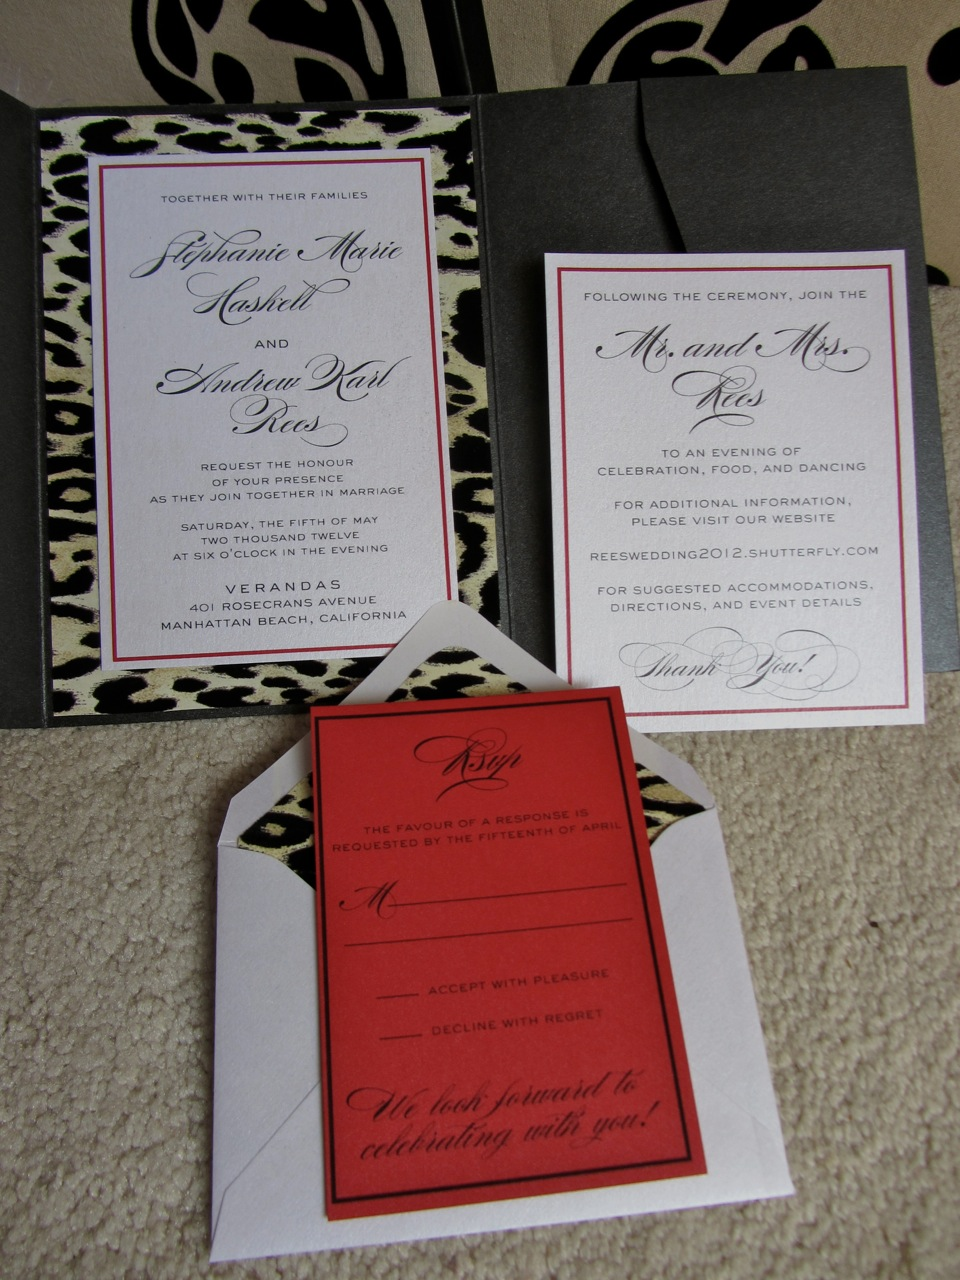 2 Hearts B 1 Designs: Feathers, Leopard Print, Red Carpet....Oh My!